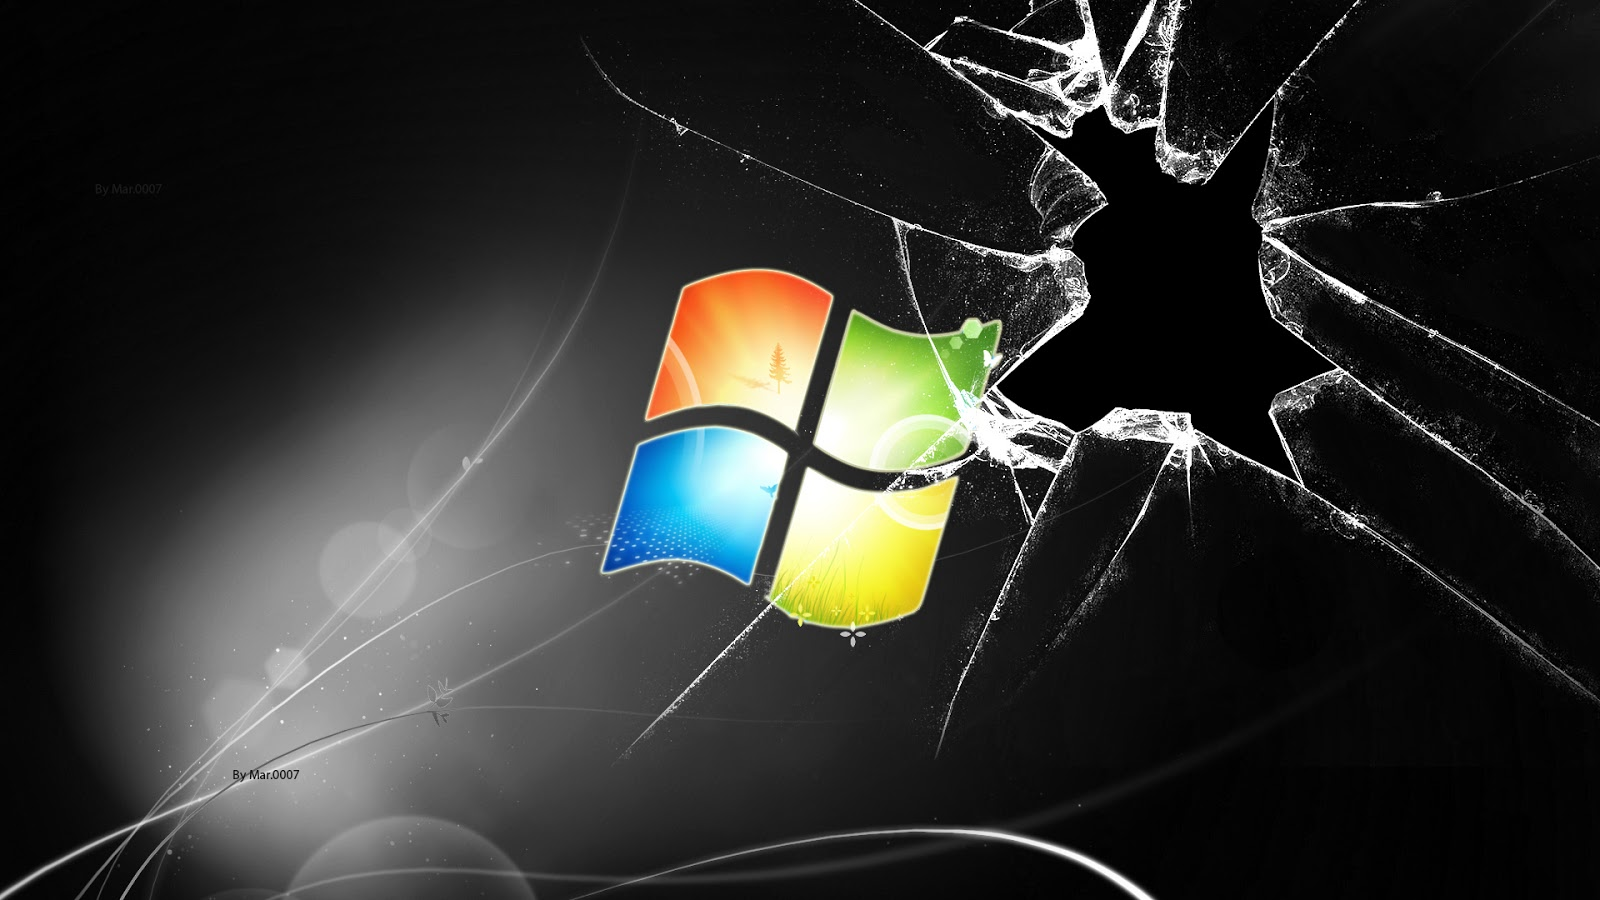 Broken Windows Amazing Hdquality Wallpapers